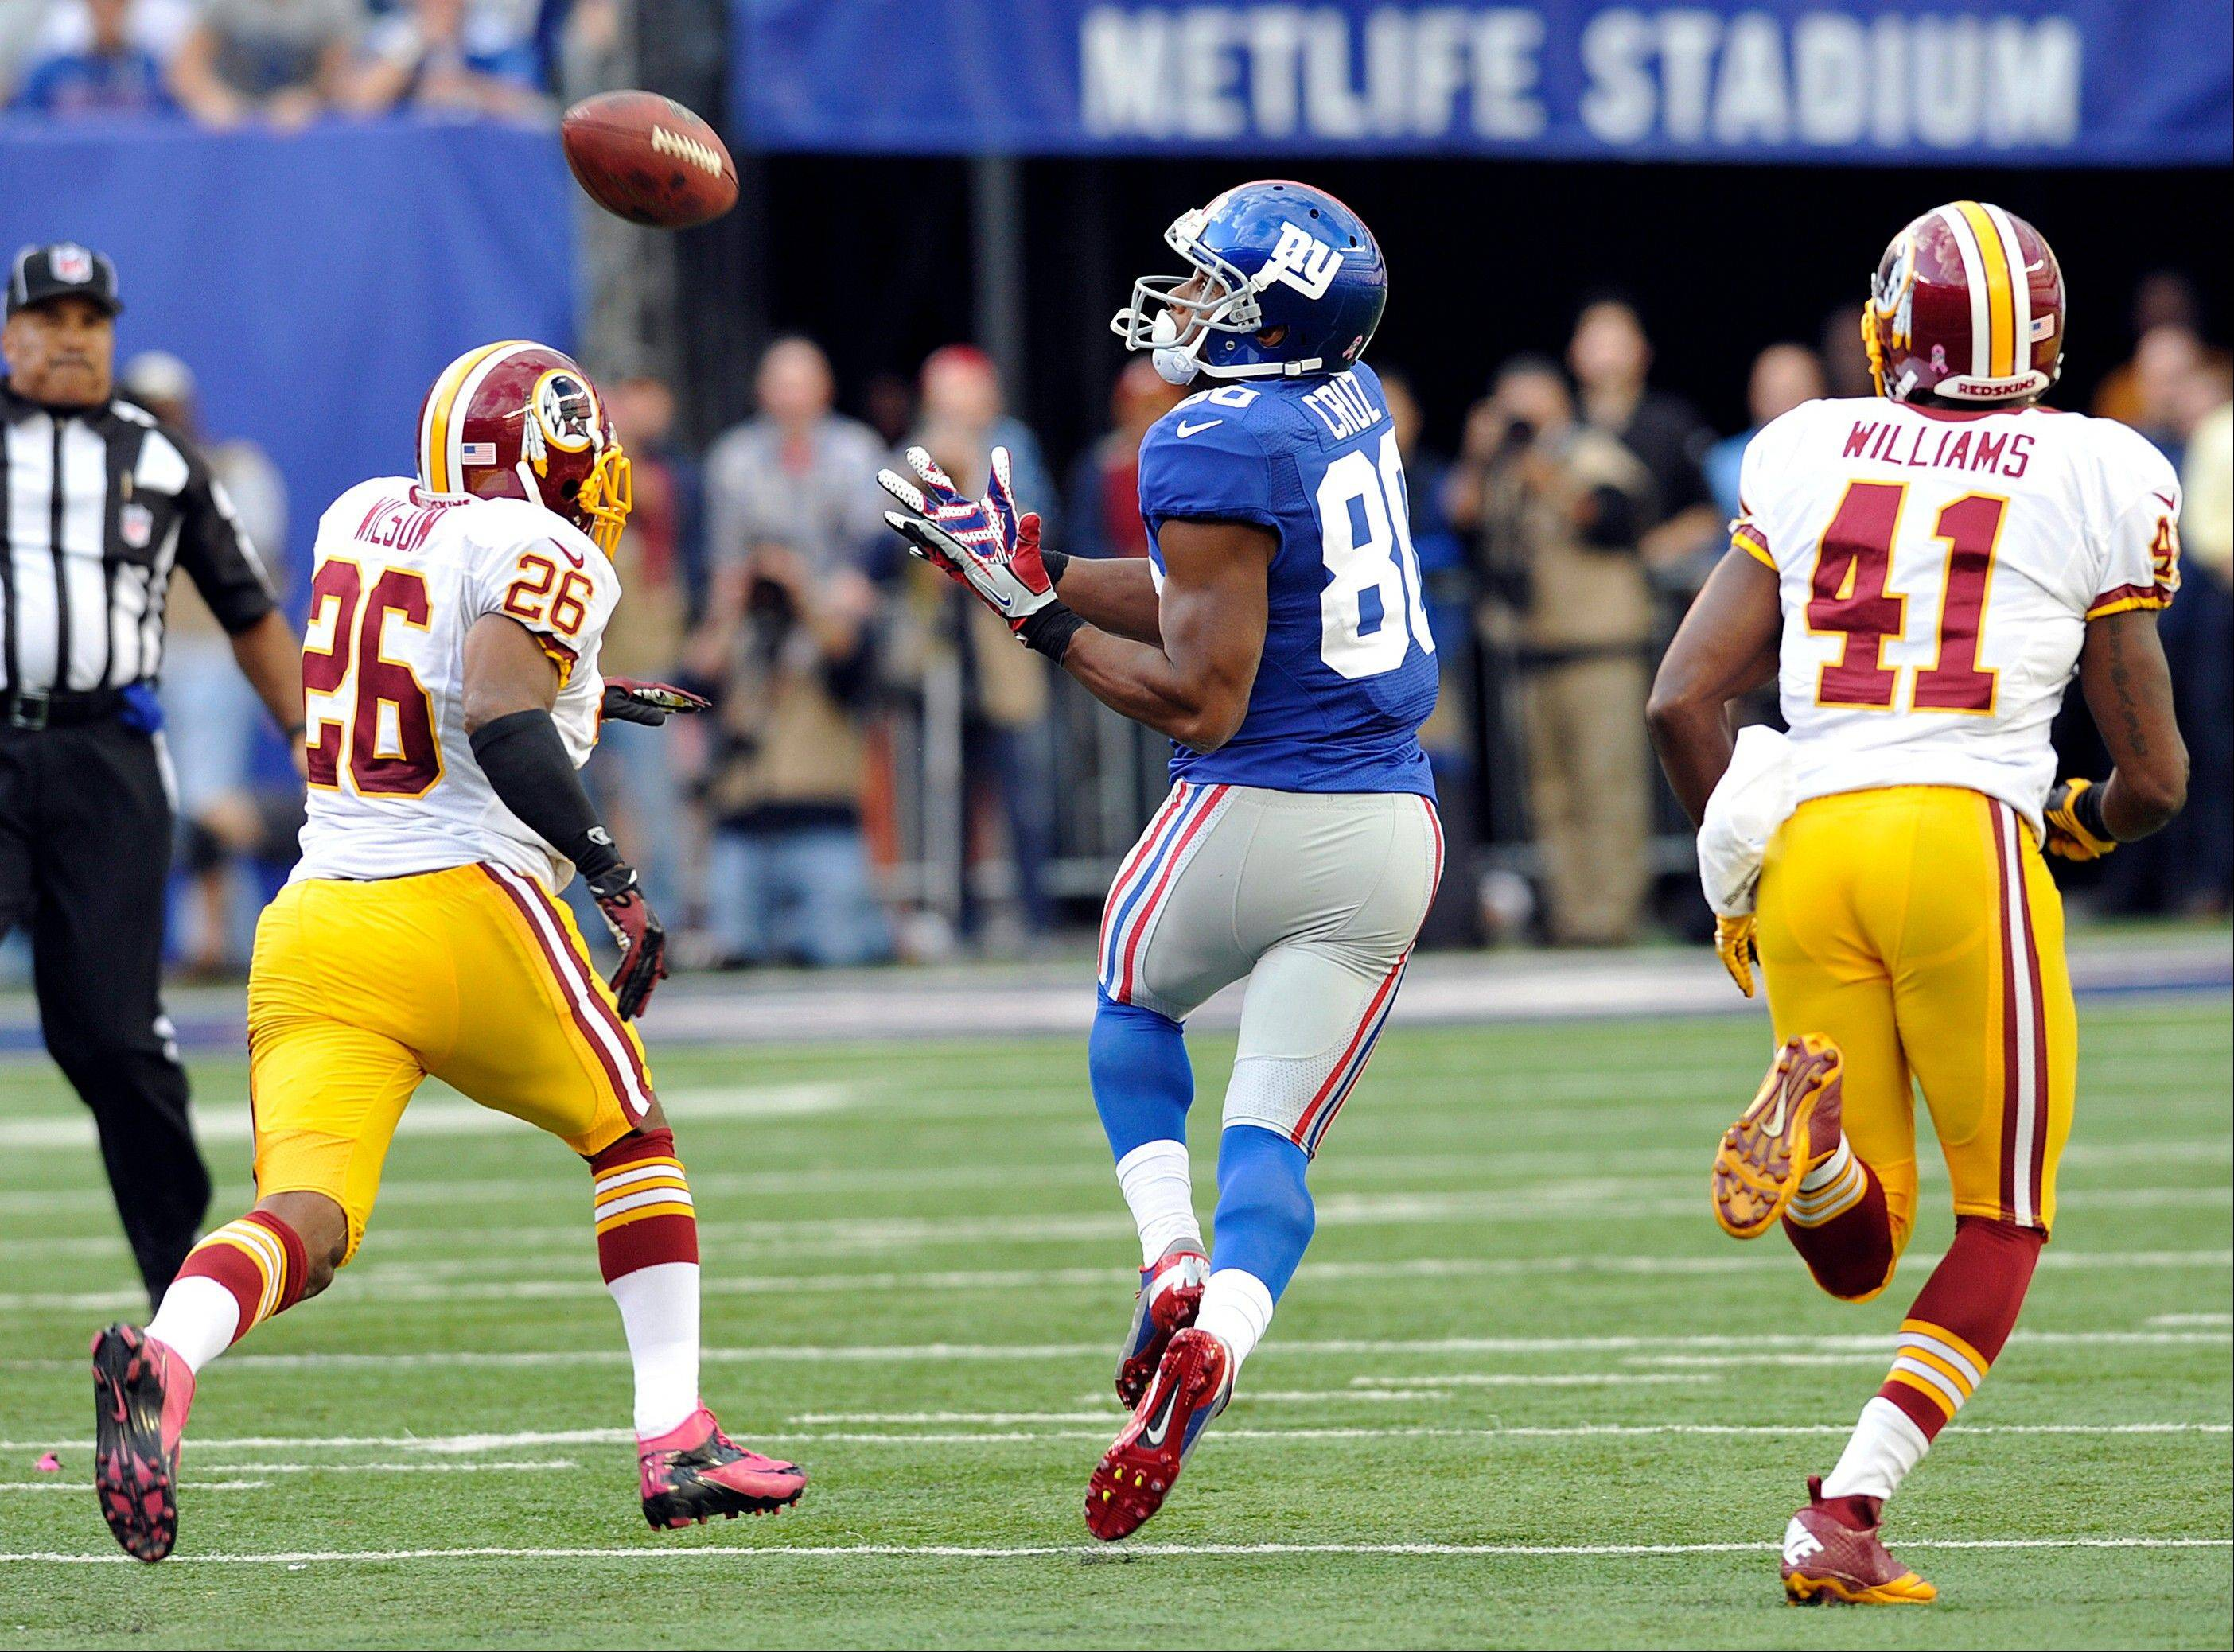 Giants wide receiver Victor Cruz catches the game-winning touchdown pass as Washington's Josh Wilson (26) and Madieu Williams pursue him Sunday in East Rutherford, N.J.